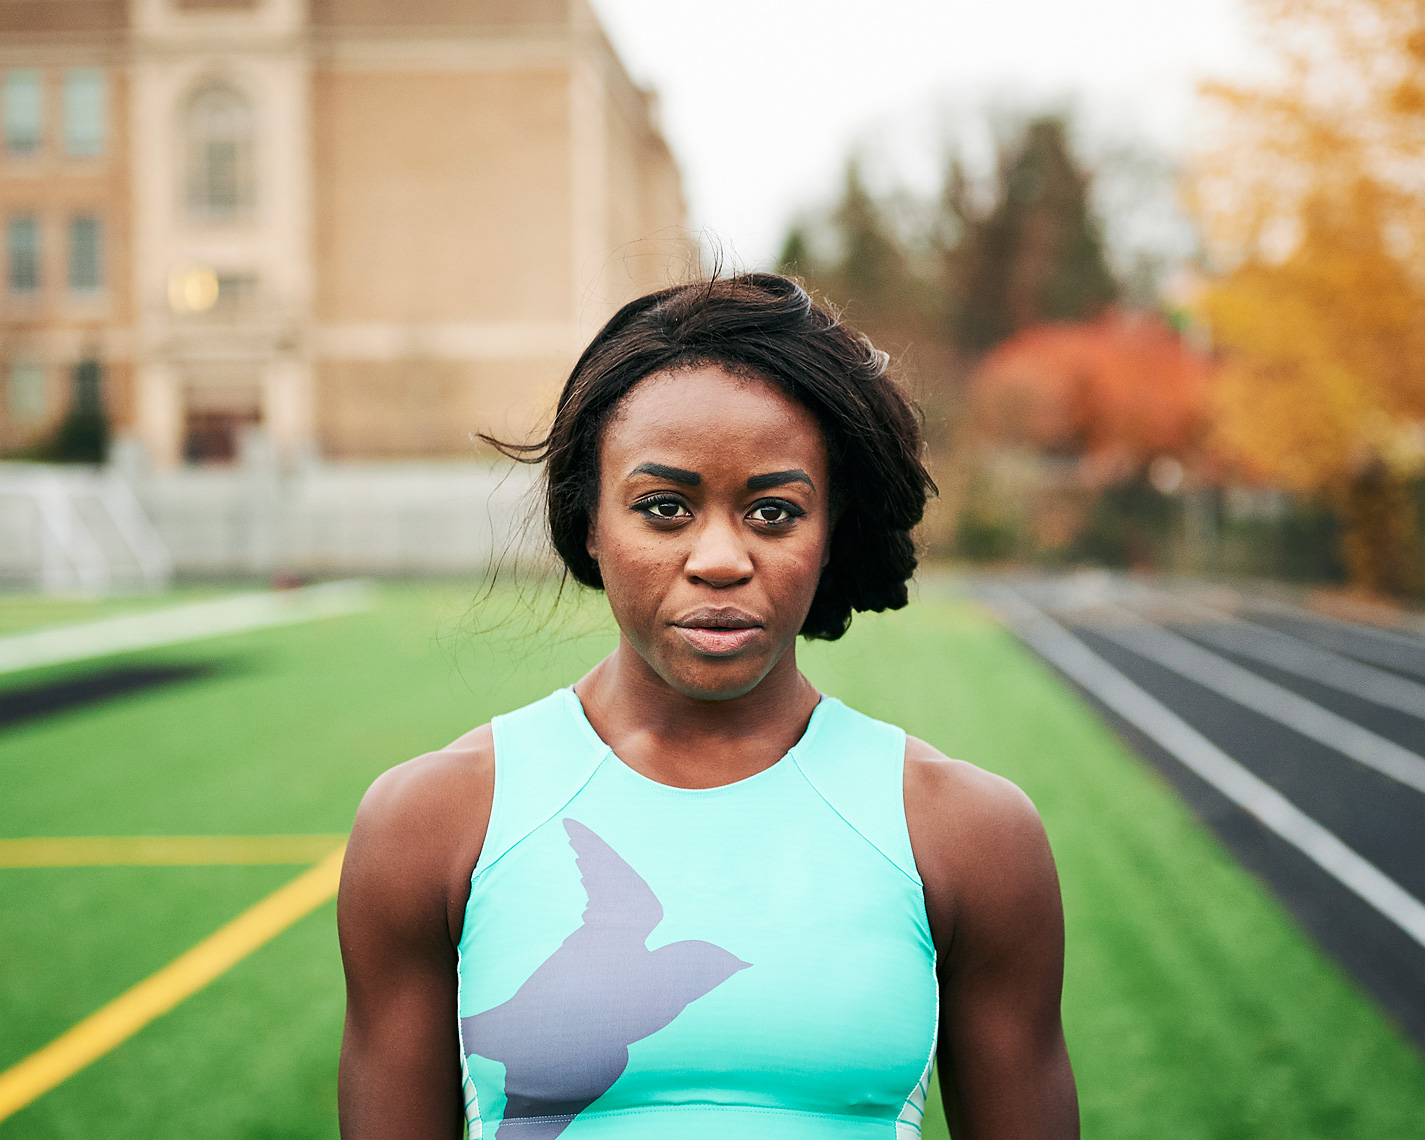 Collegiate runner in a candid portrait